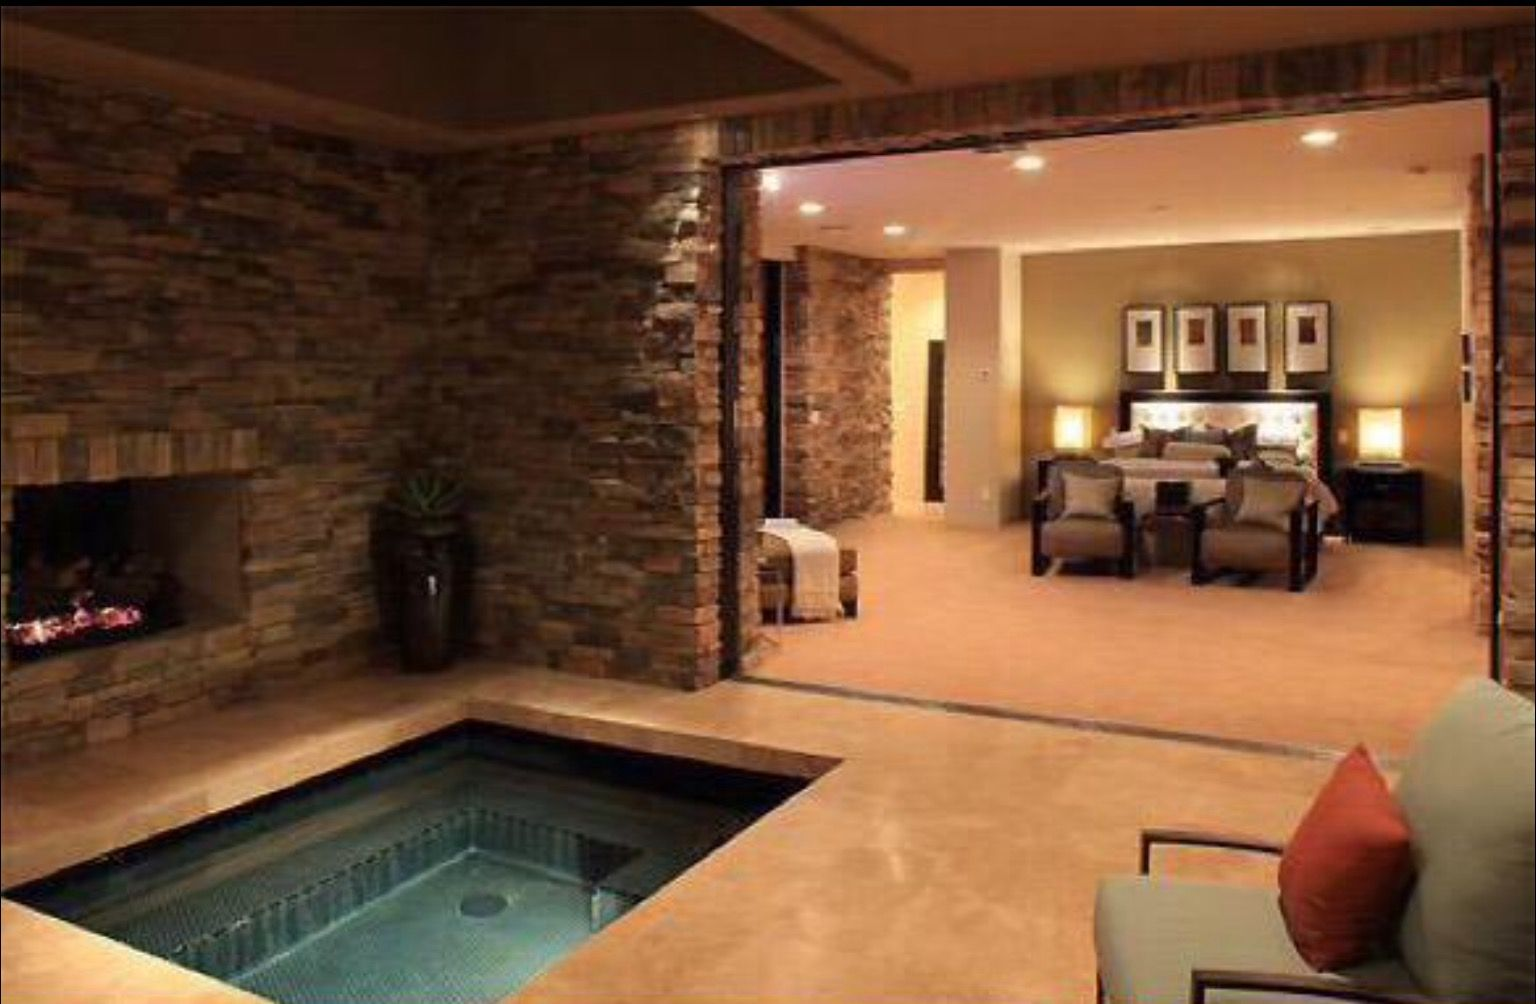 Master bedroom jacuzzi designs  Master bedroom with hot tub and fireplace  home  Pinterest  Hot